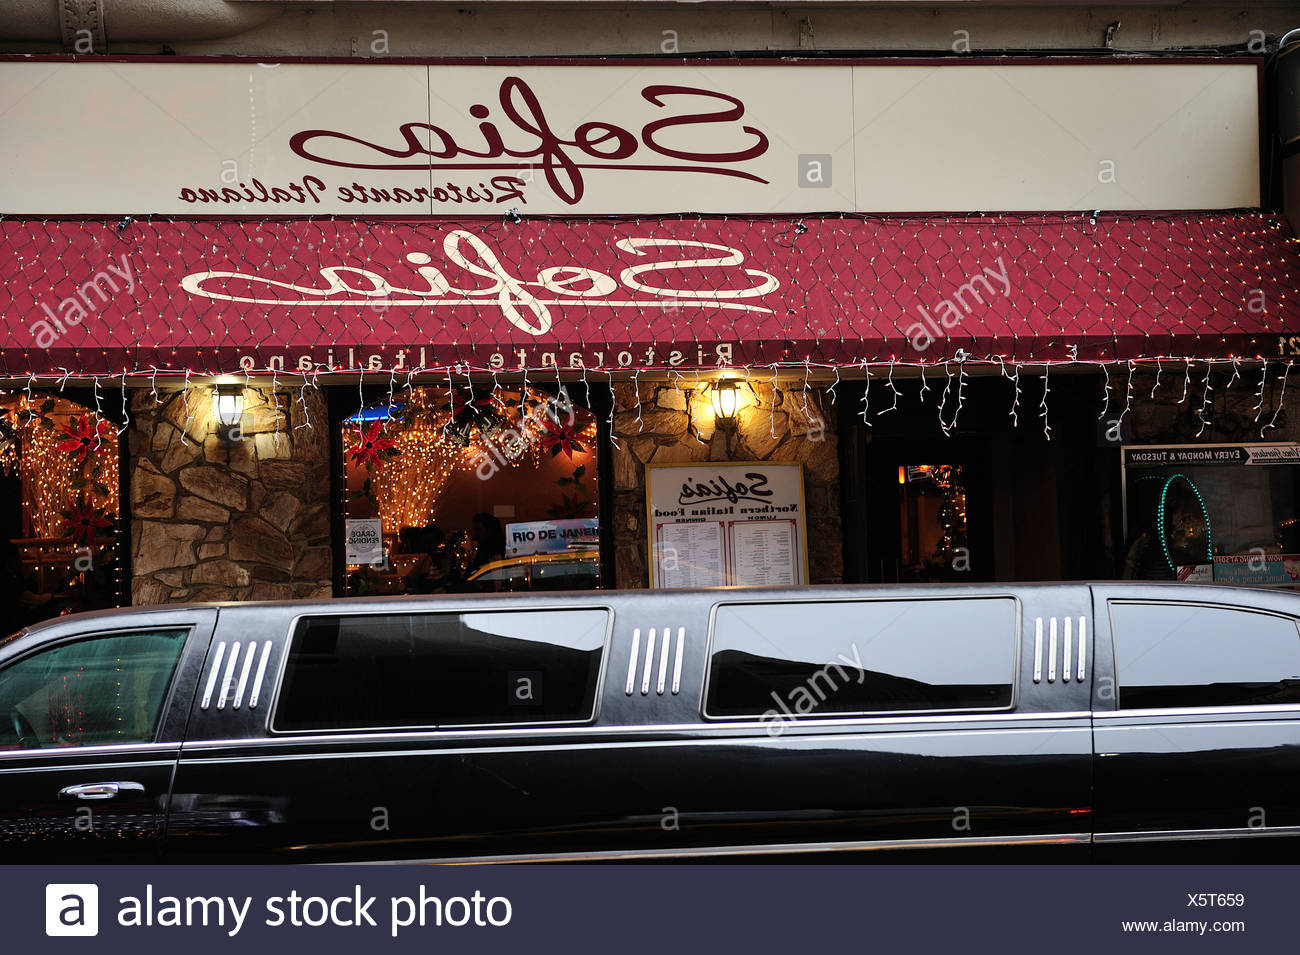 Limousine, Little Italy, Manhattan, New York, USA, United States, America, stretch, limo, - Stock Image